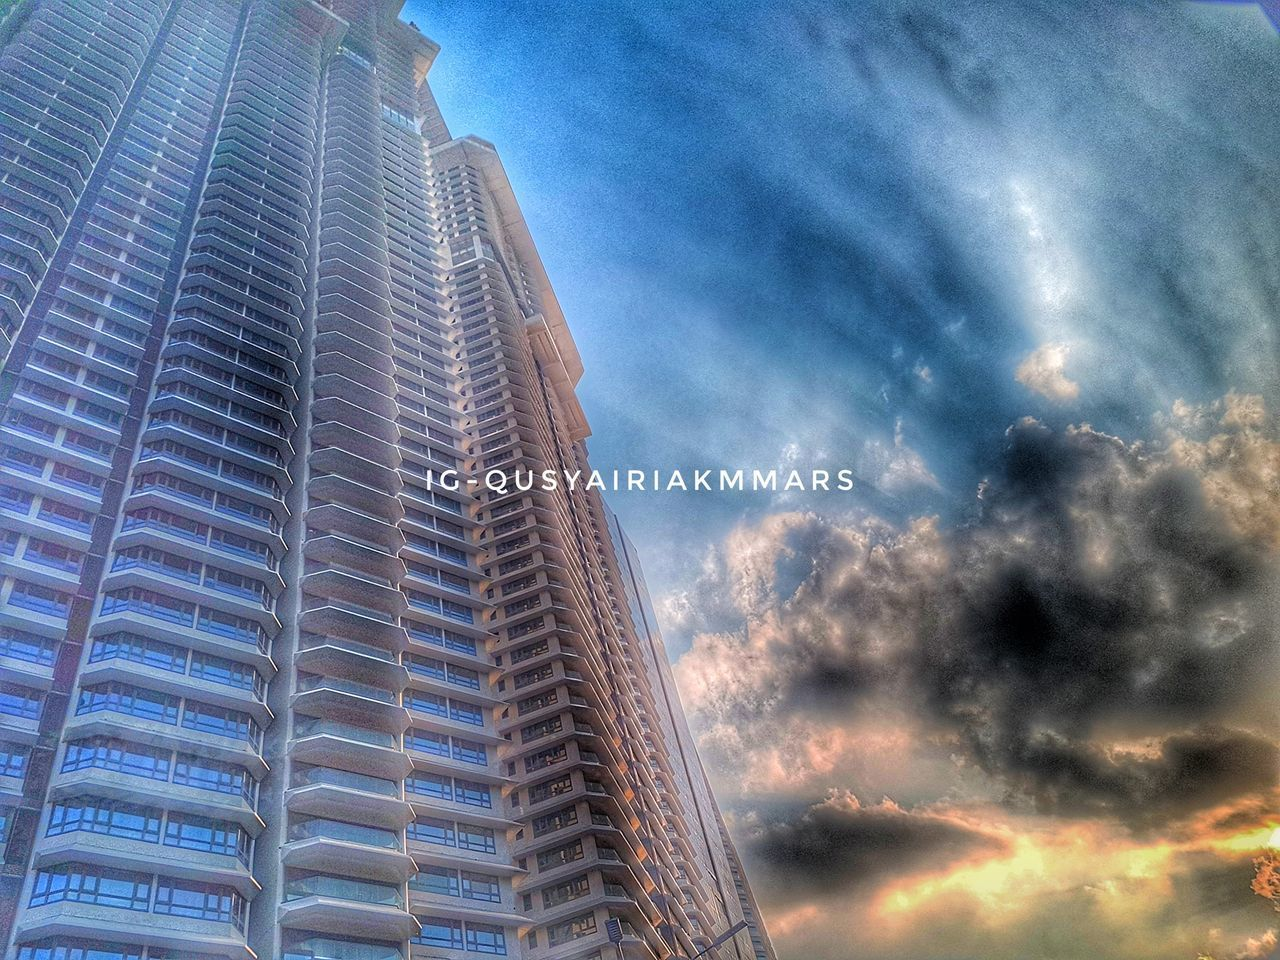 skyscraper, low angle view, architecture, built structure, sky, building exterior, outdoors, no people, day, city, modern, growth, tall